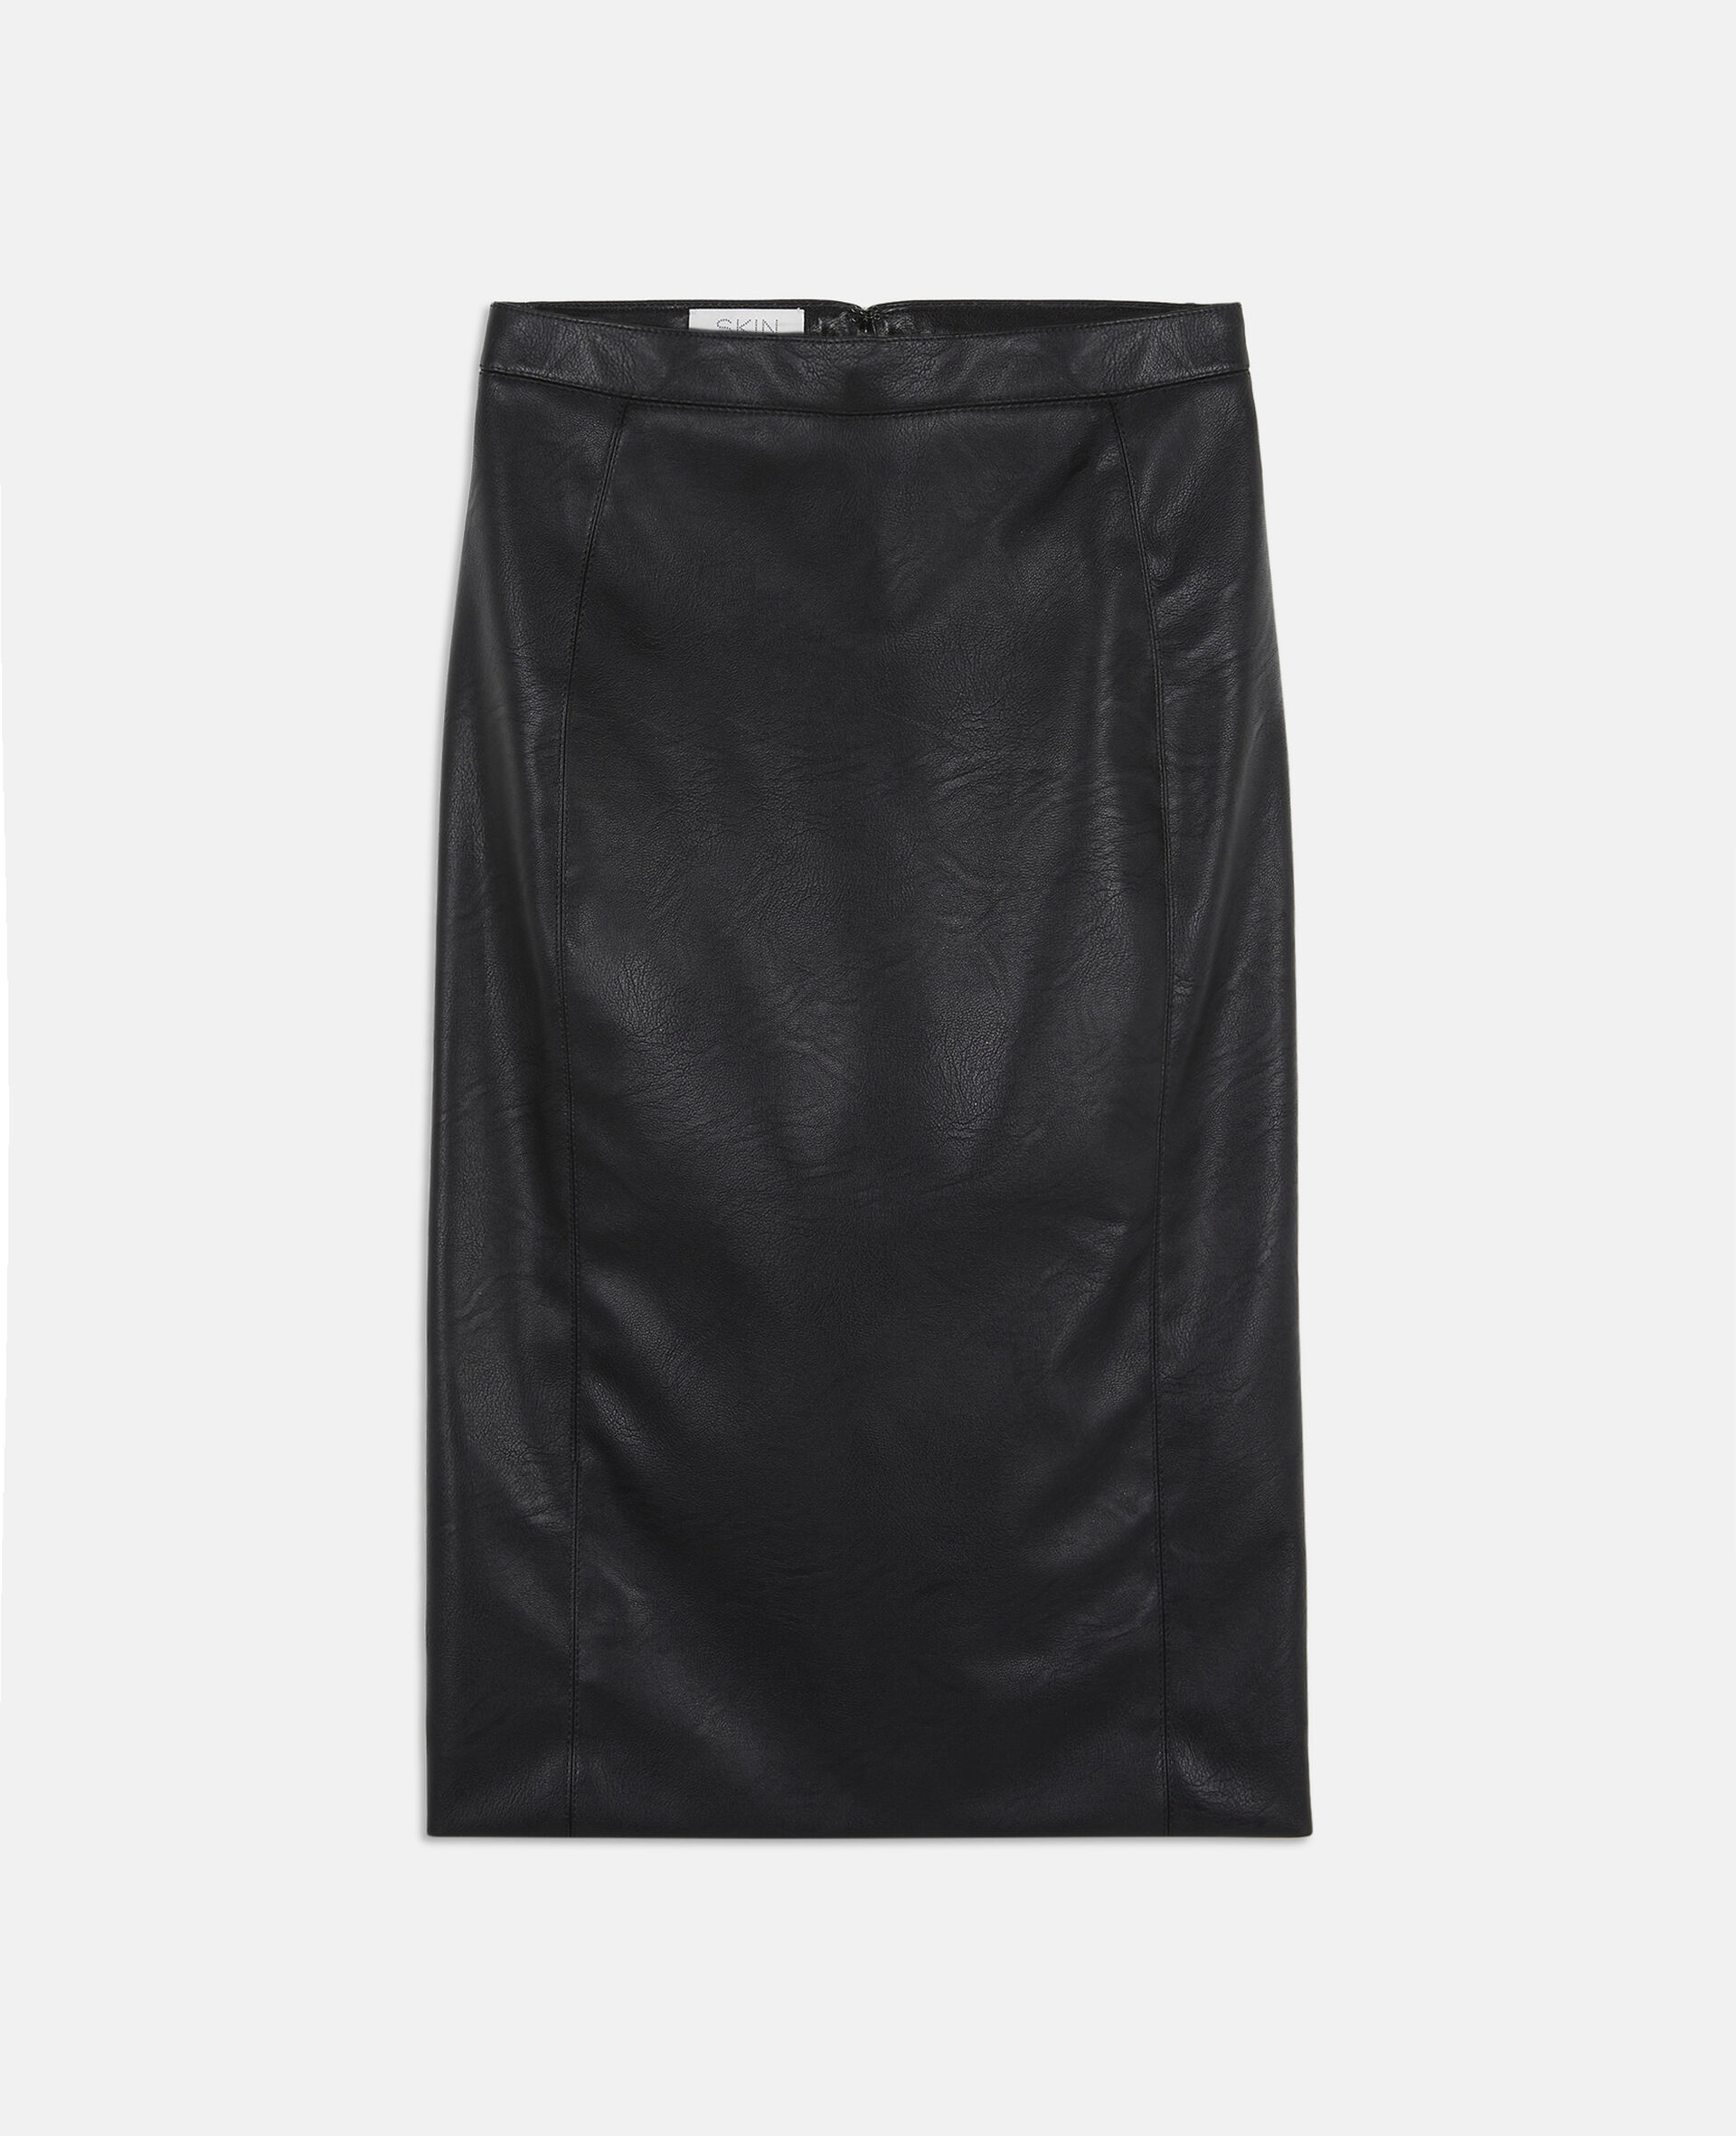 Mansela Black Skirt-Black-large image number 0